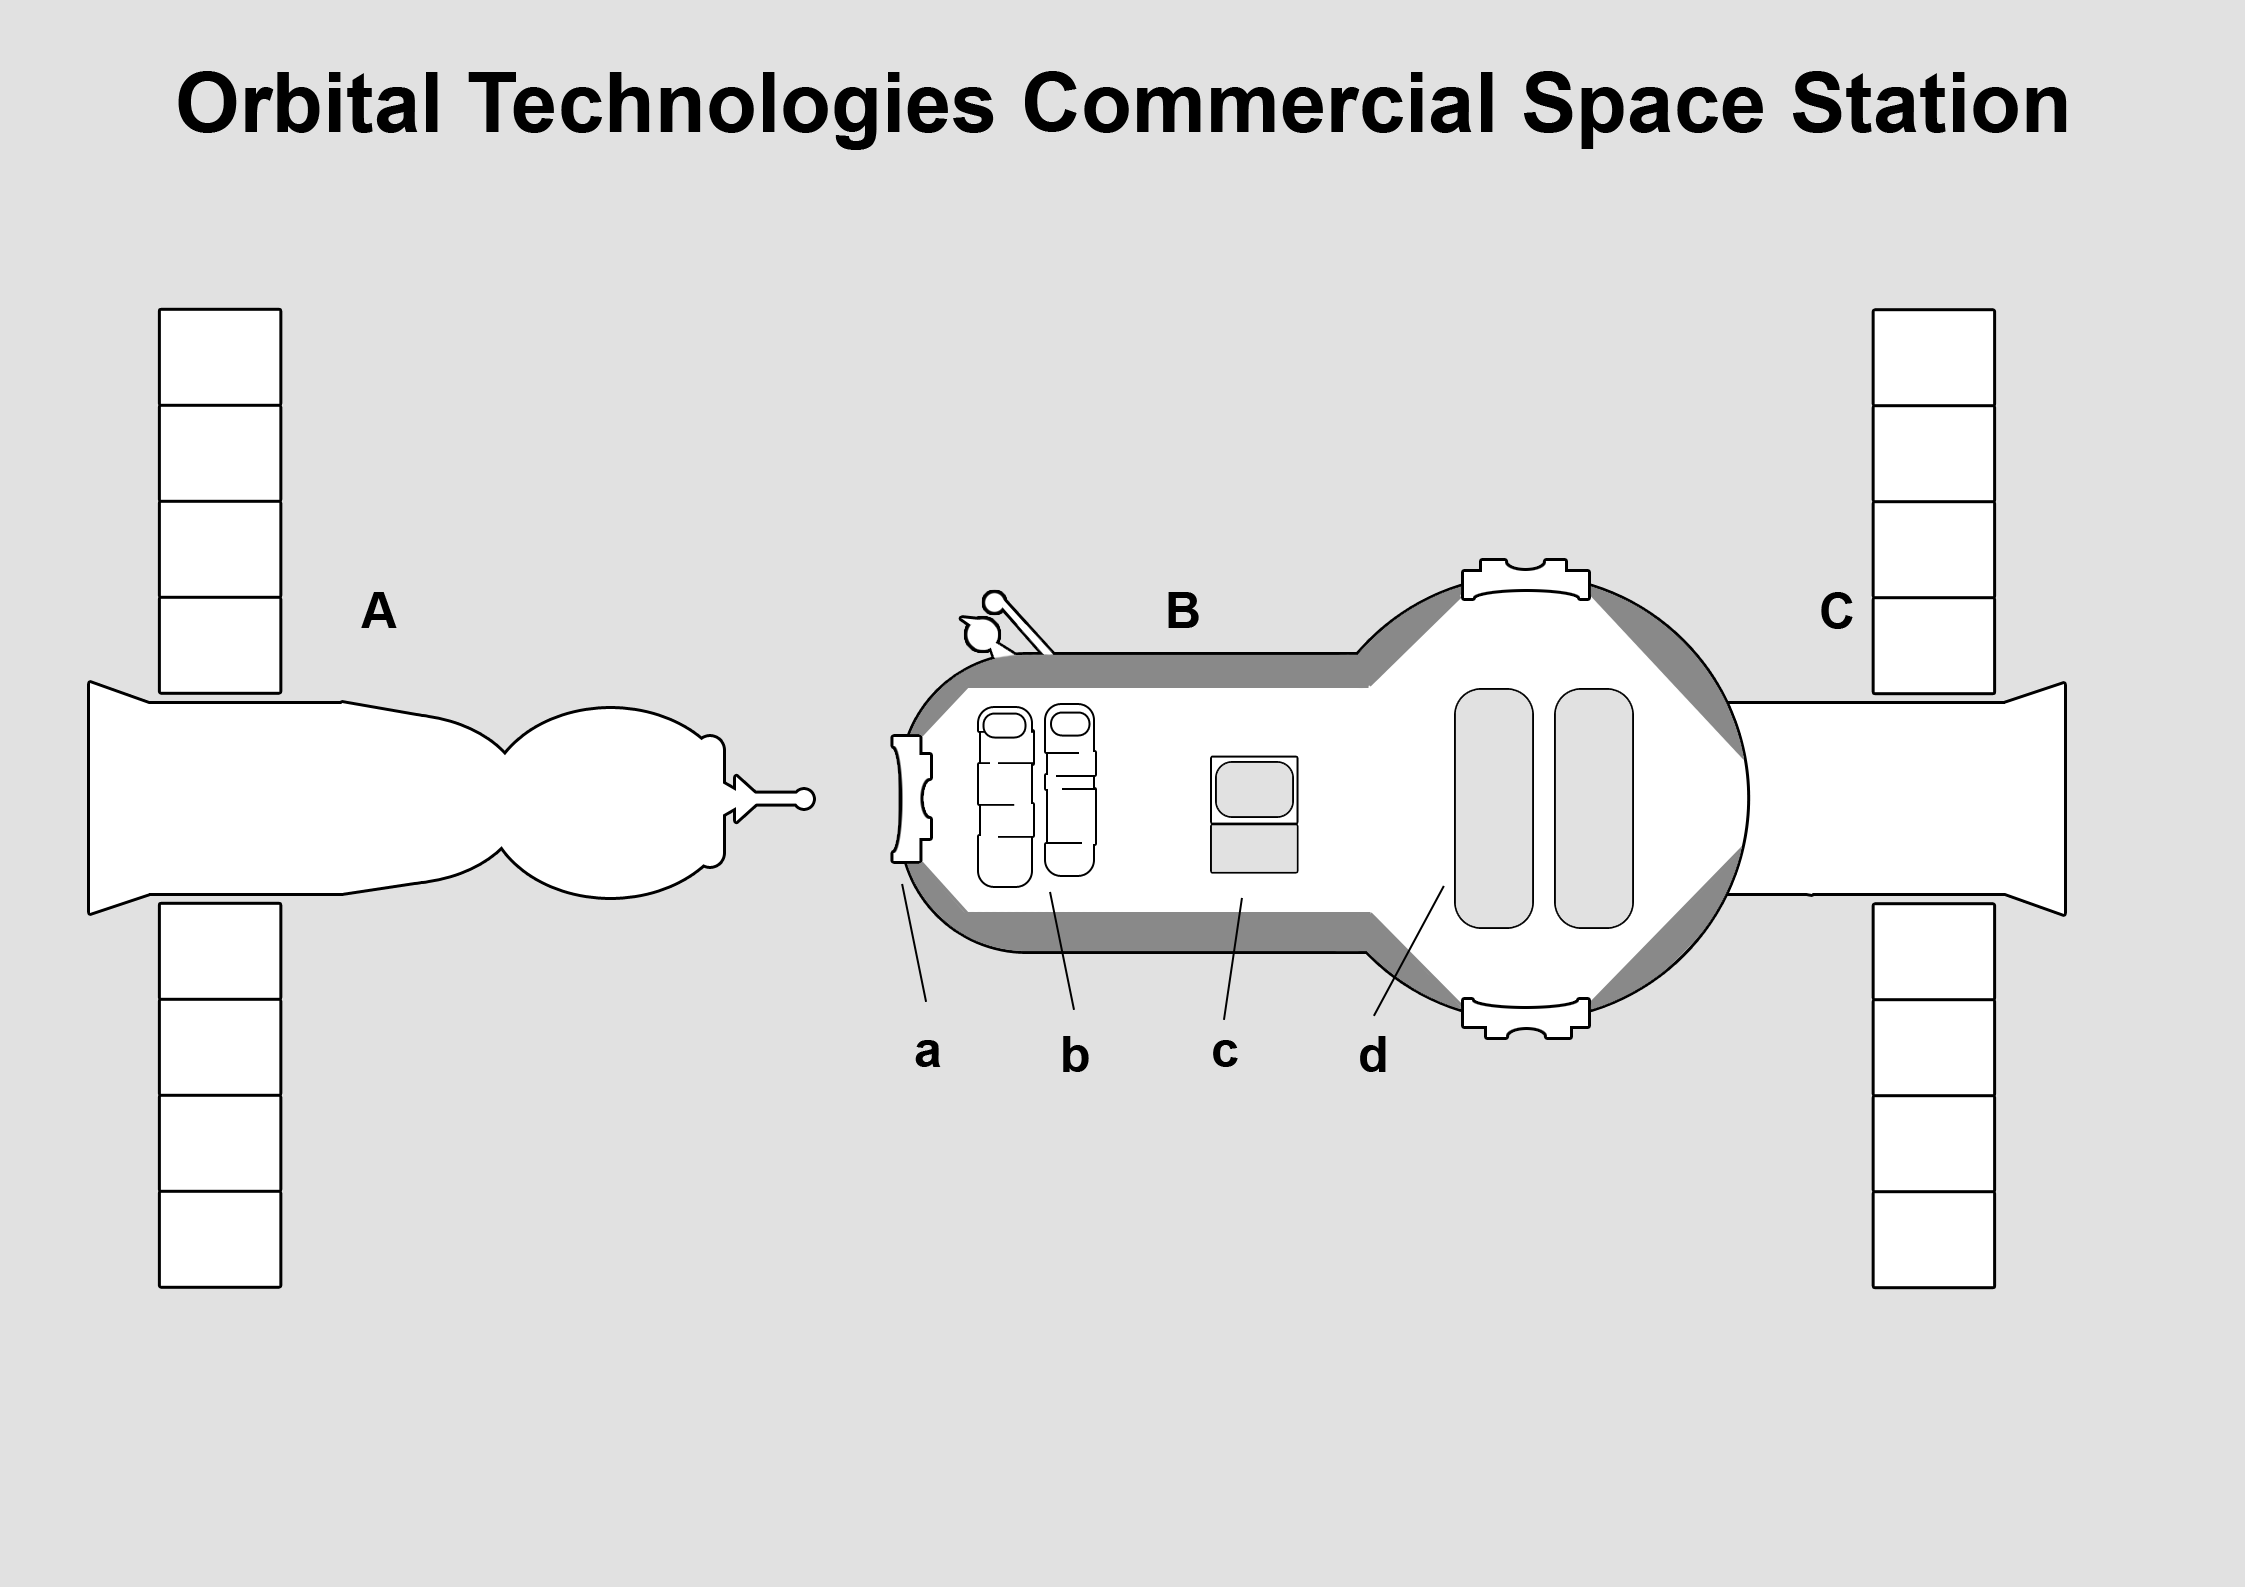 Orbital Technologies Commercial Space Station - Wikipedia